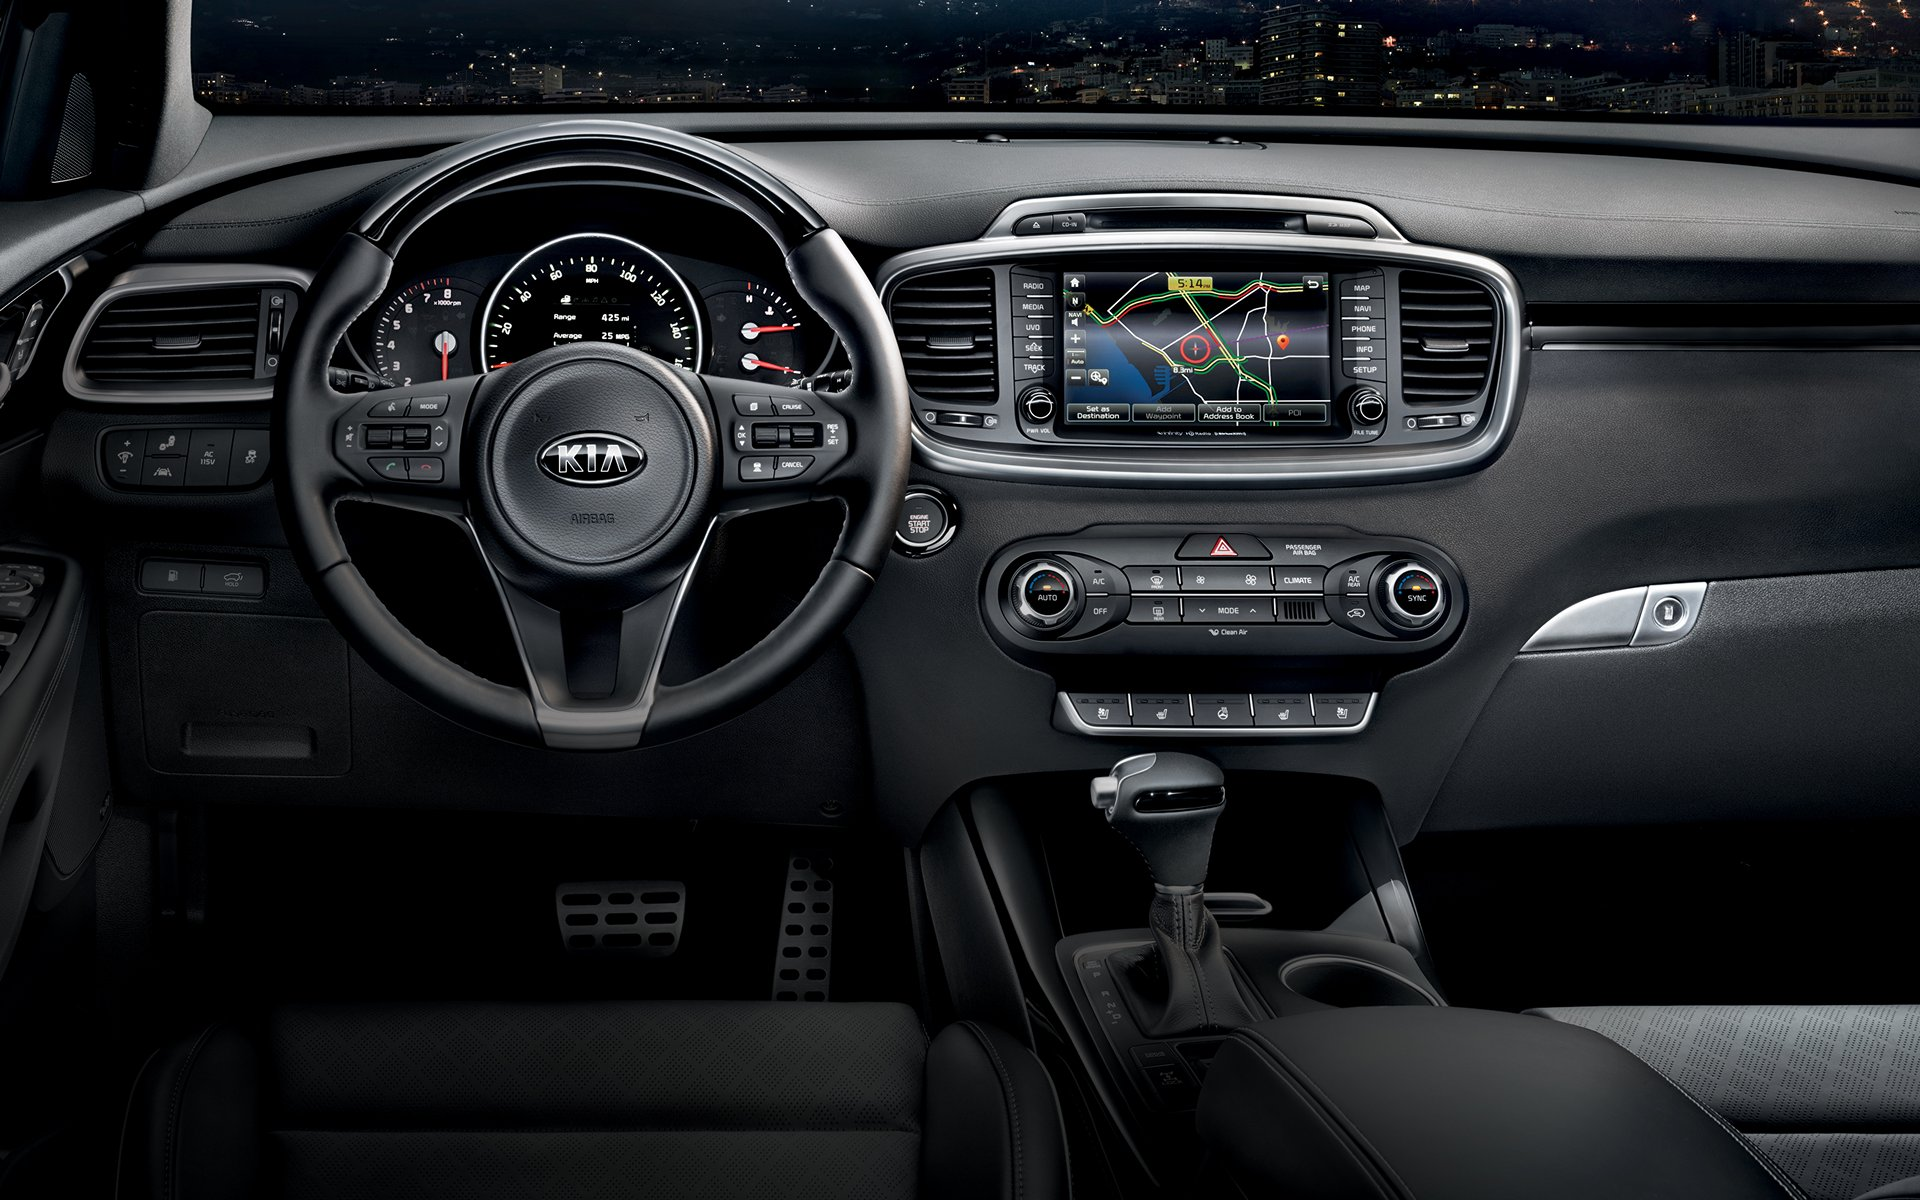 New Kia Sorento Interior image 2